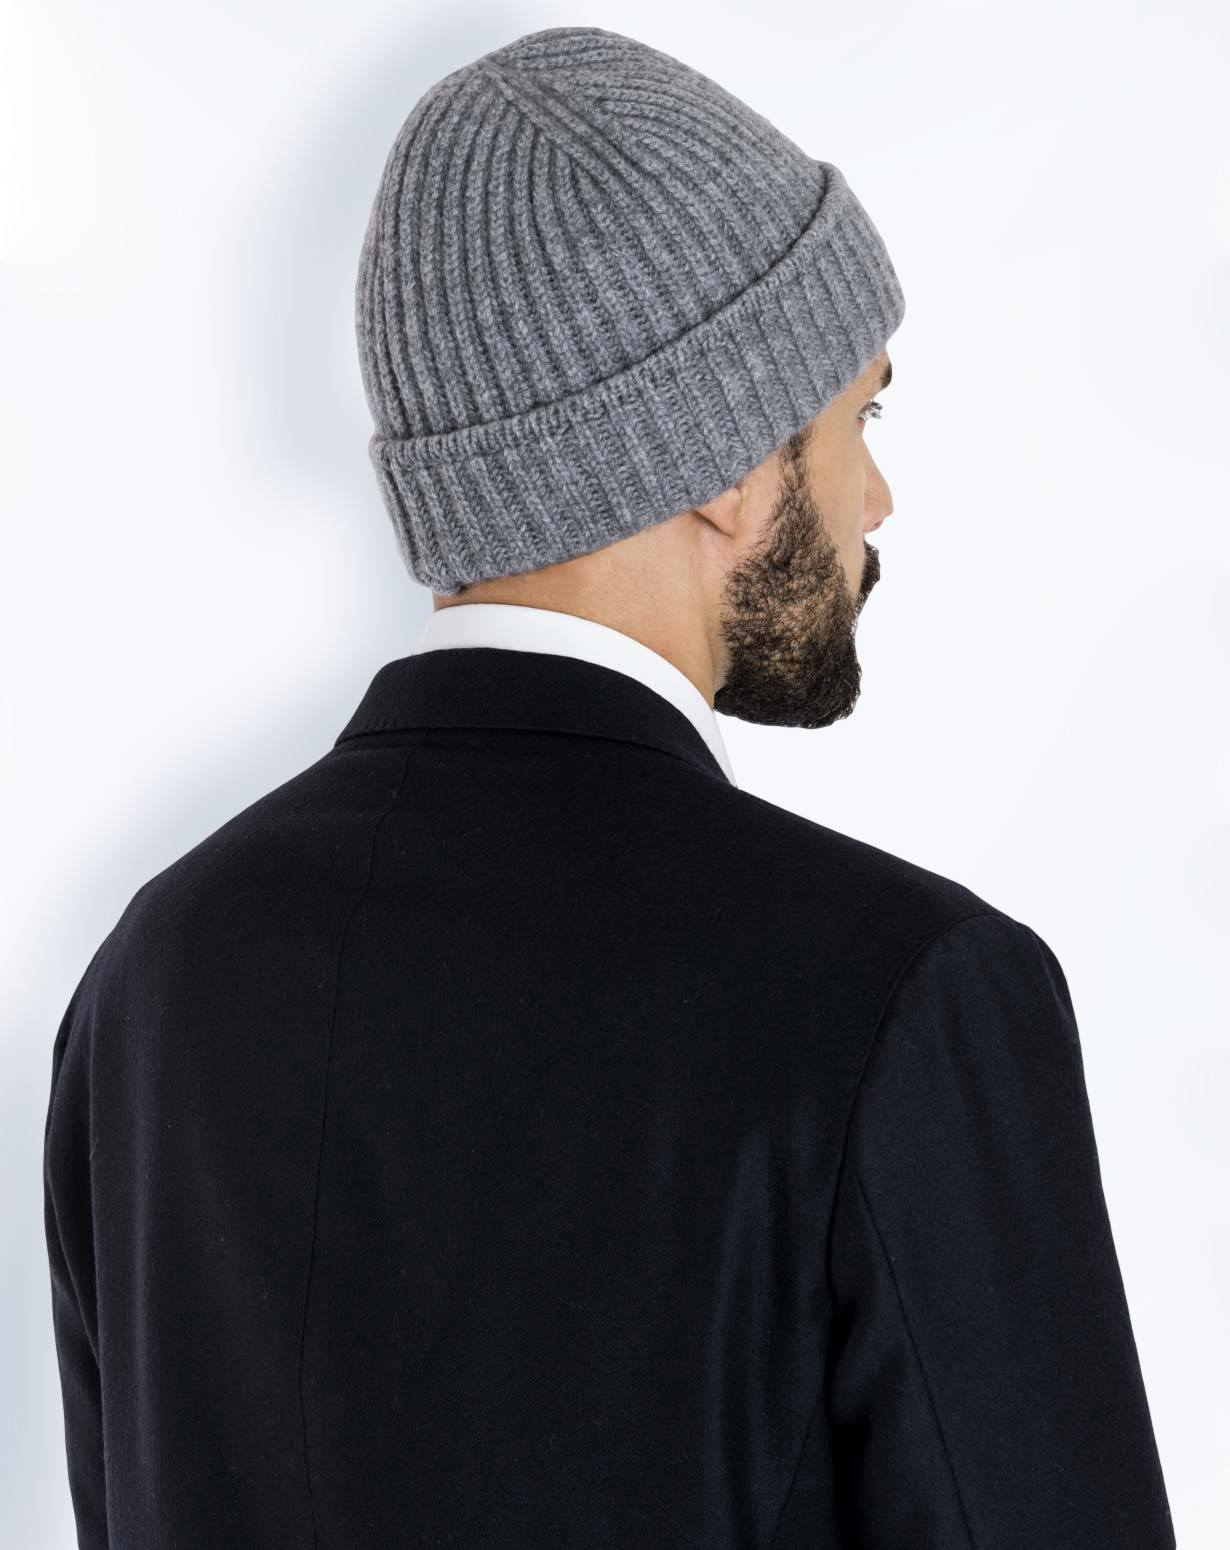 b4edf06676a24 Men s Cashmere Hats - Our collection